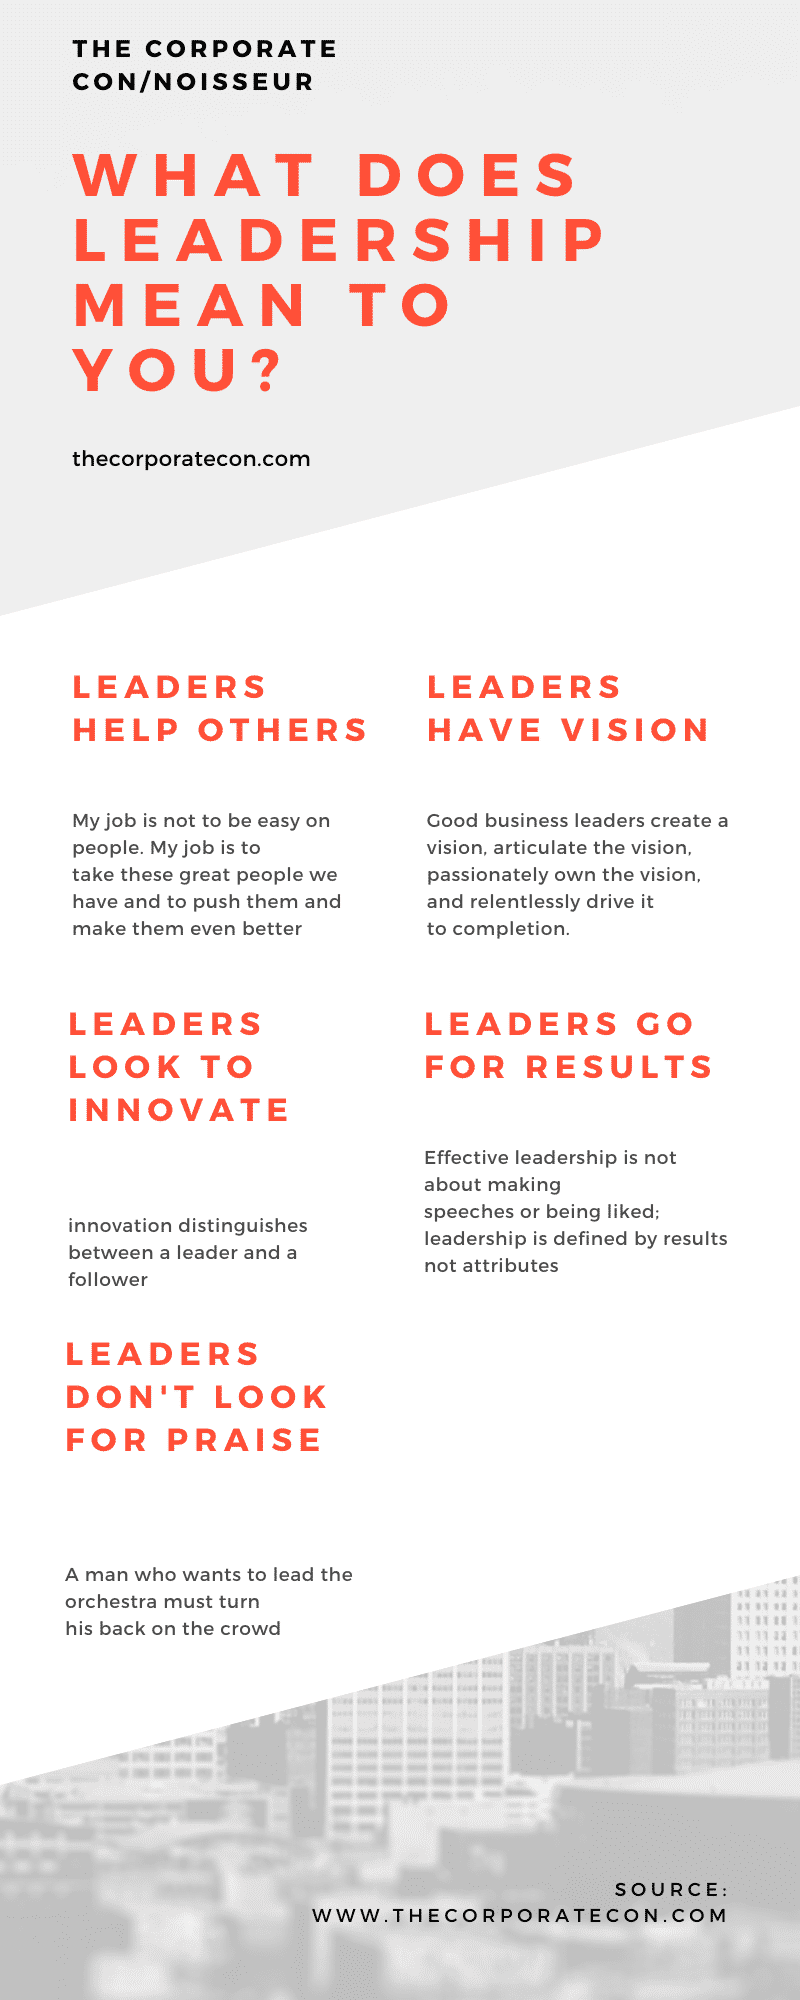 What Does Leadership Mean to You?